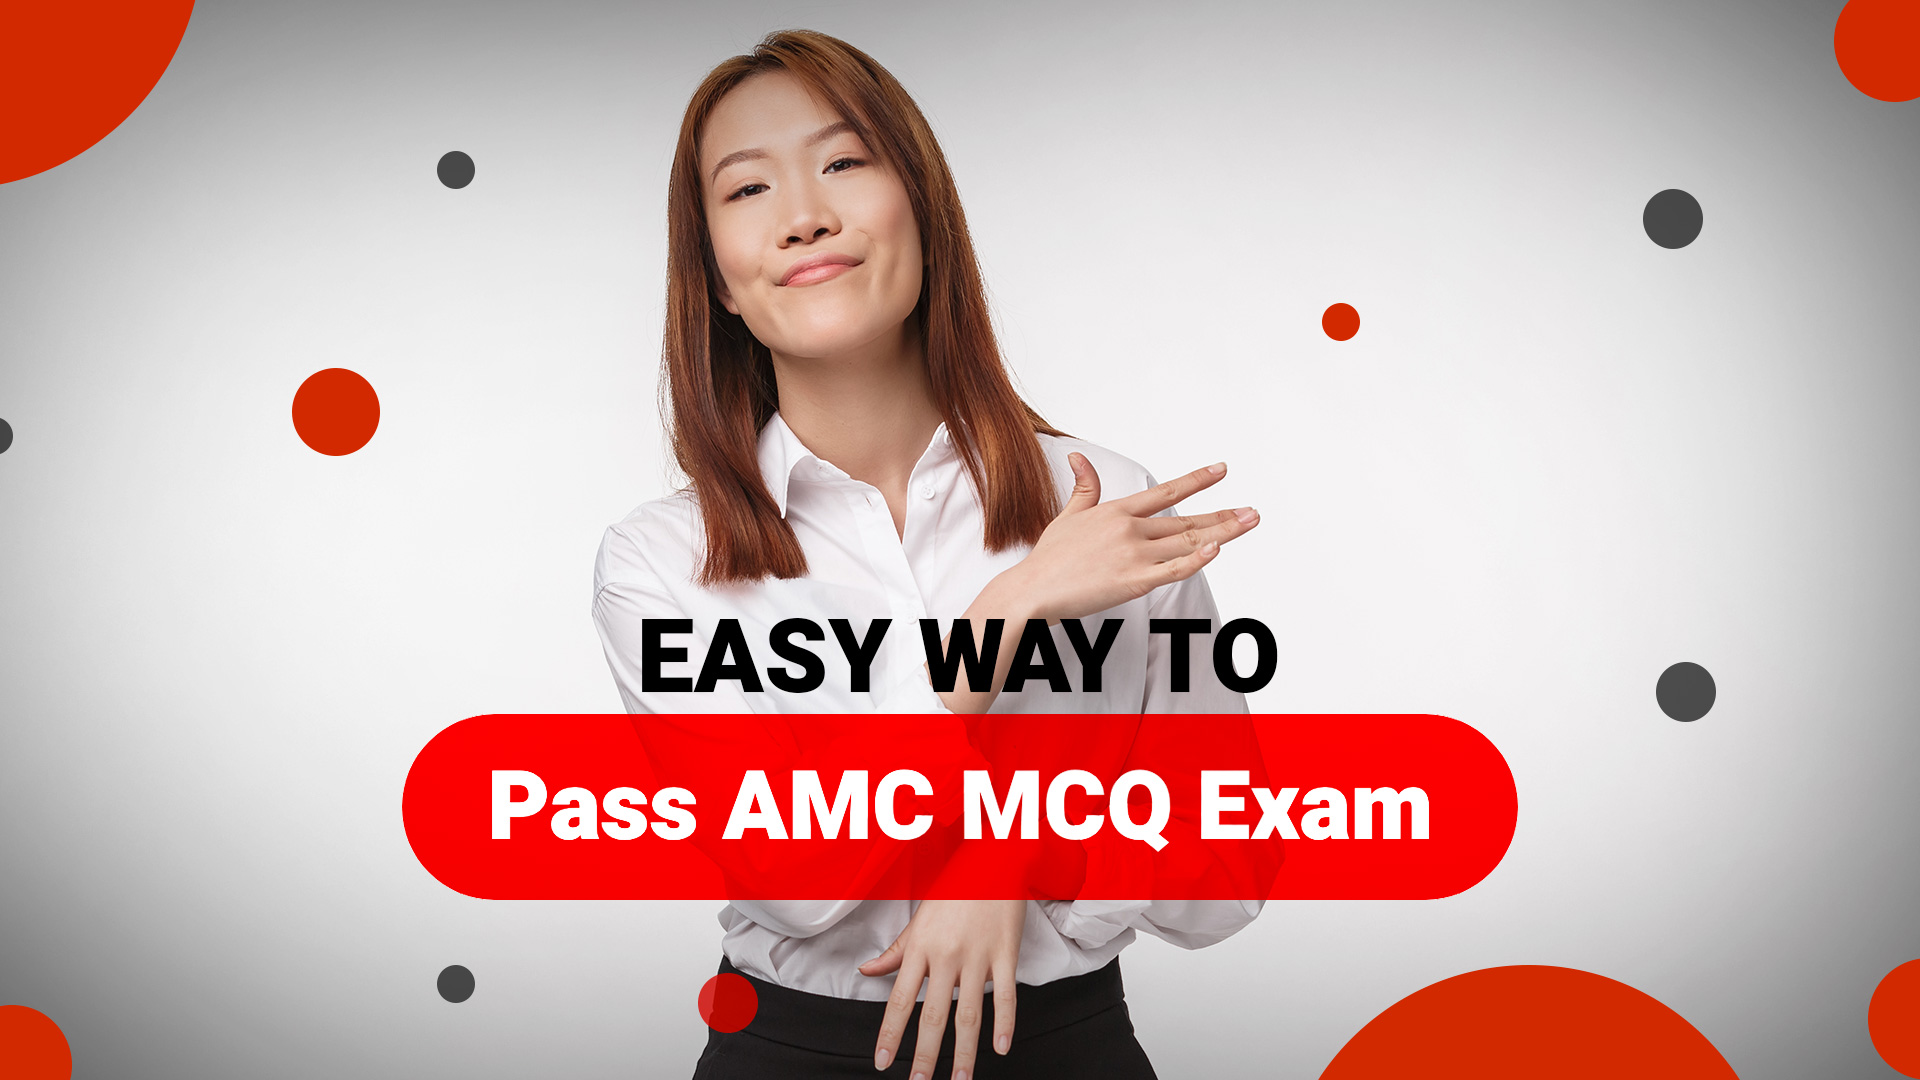 East way to pass AMC MCQ exam